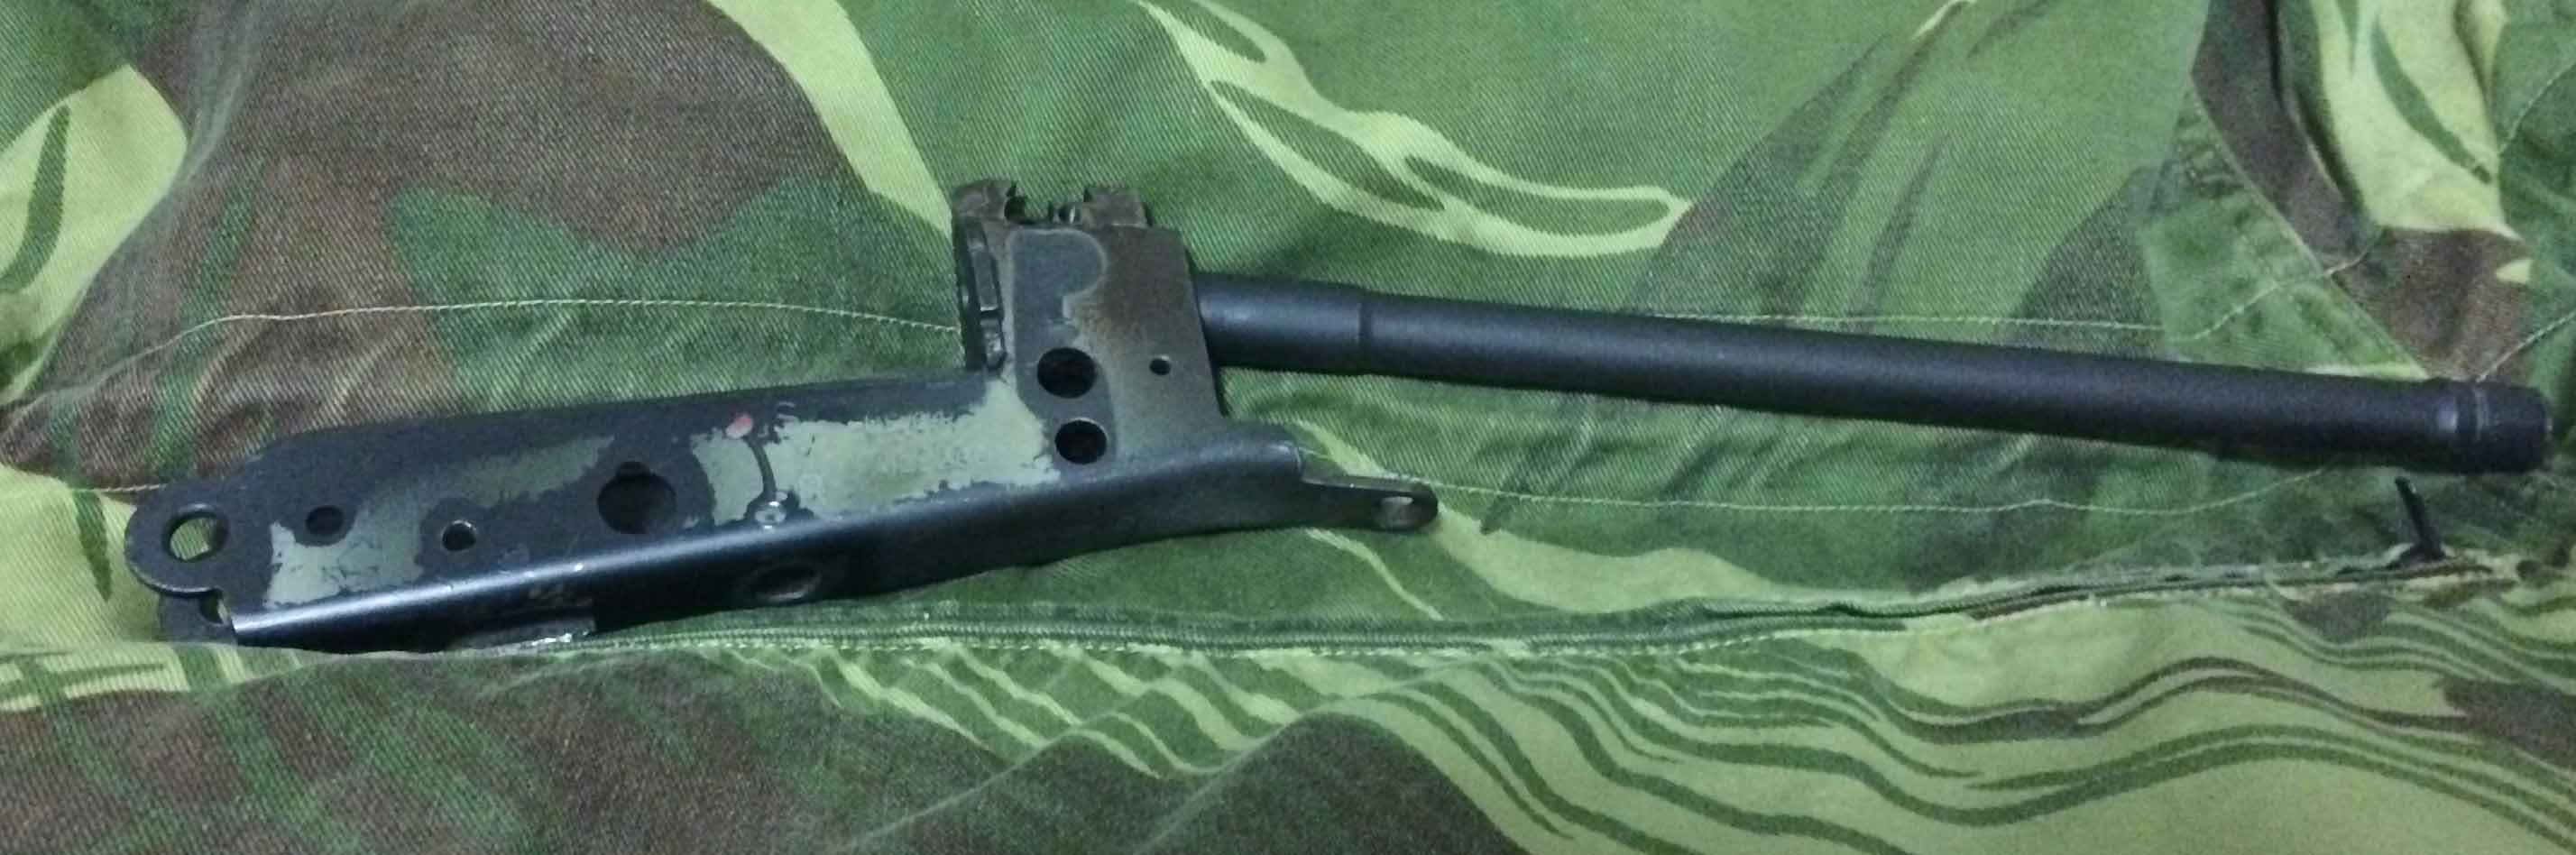 fal-lower-inch-pic